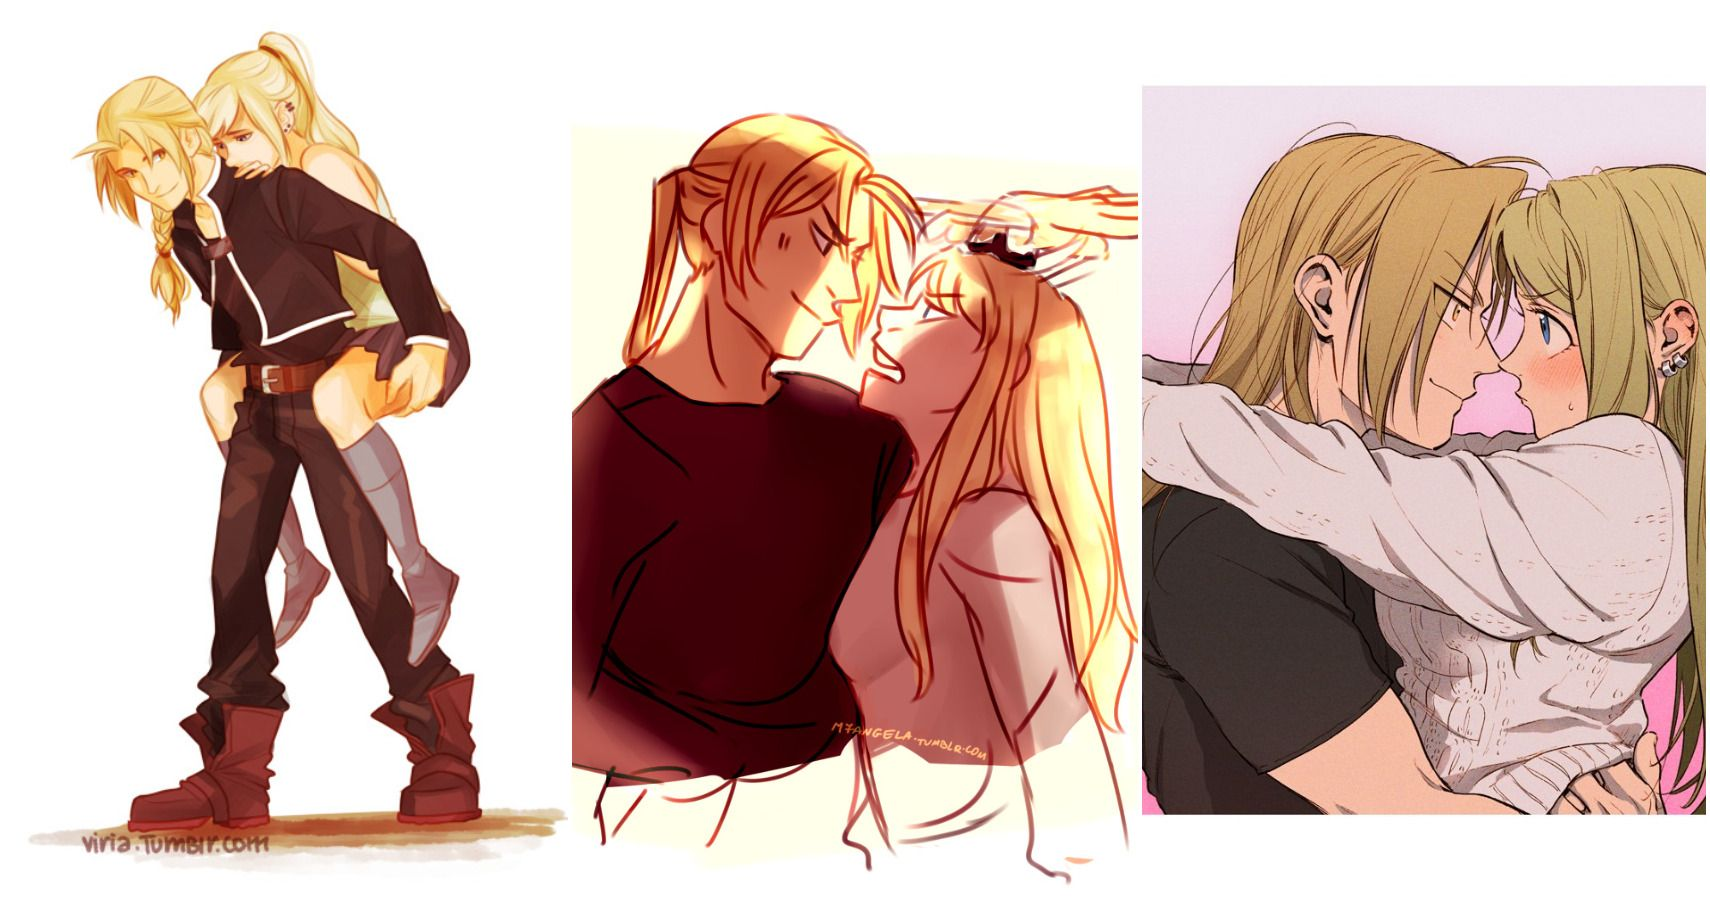 Fullmetal Alchemist 10 Pieces Of Ed Winry Fan Art That Are Too